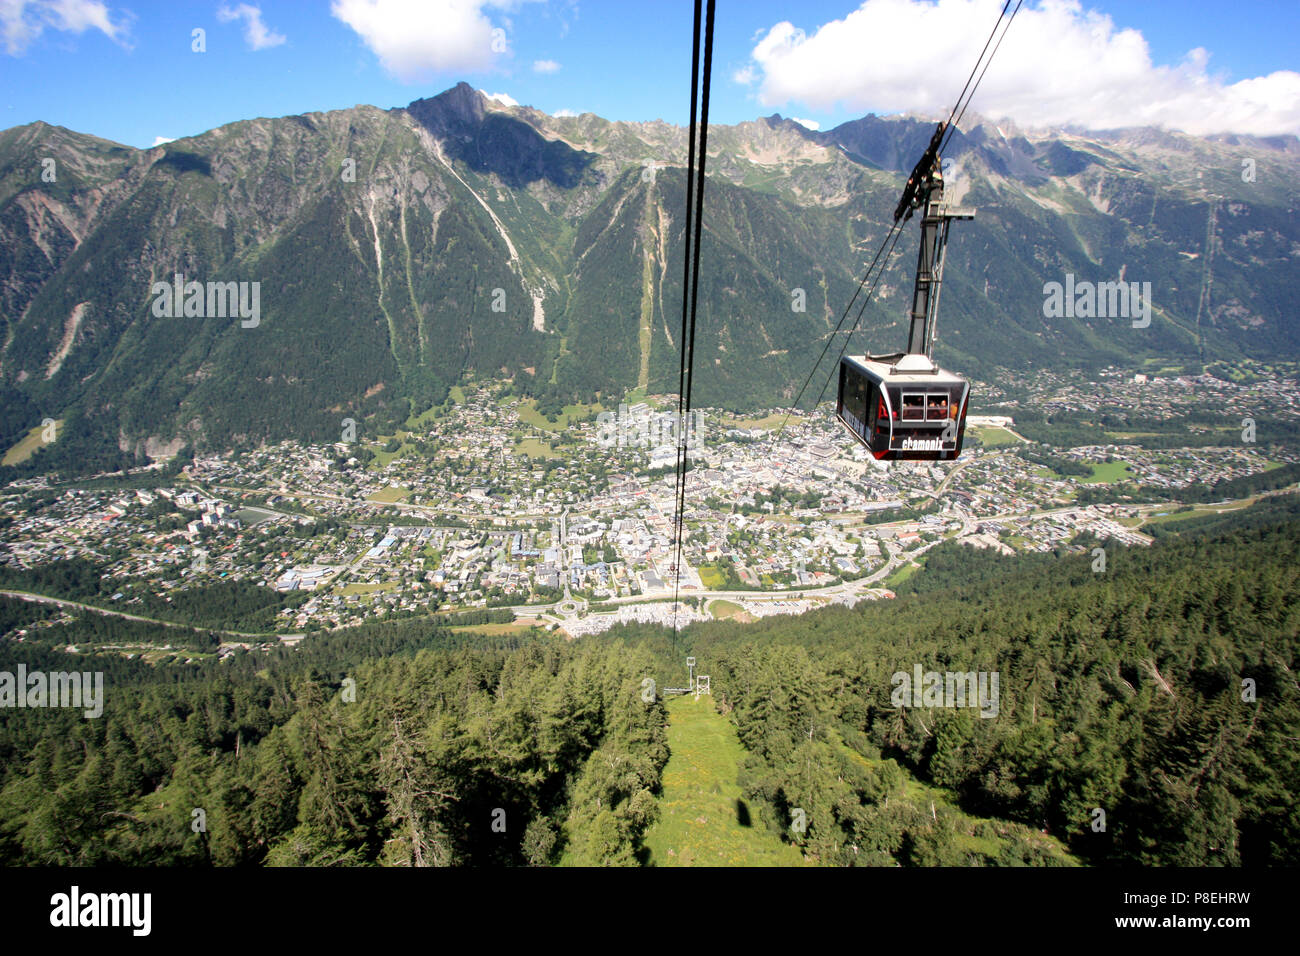 Cable car heading for the peak of the Aiguille-du-Midi in the Mont Blanc massif - Chamonix, France, in the background - Stock Image